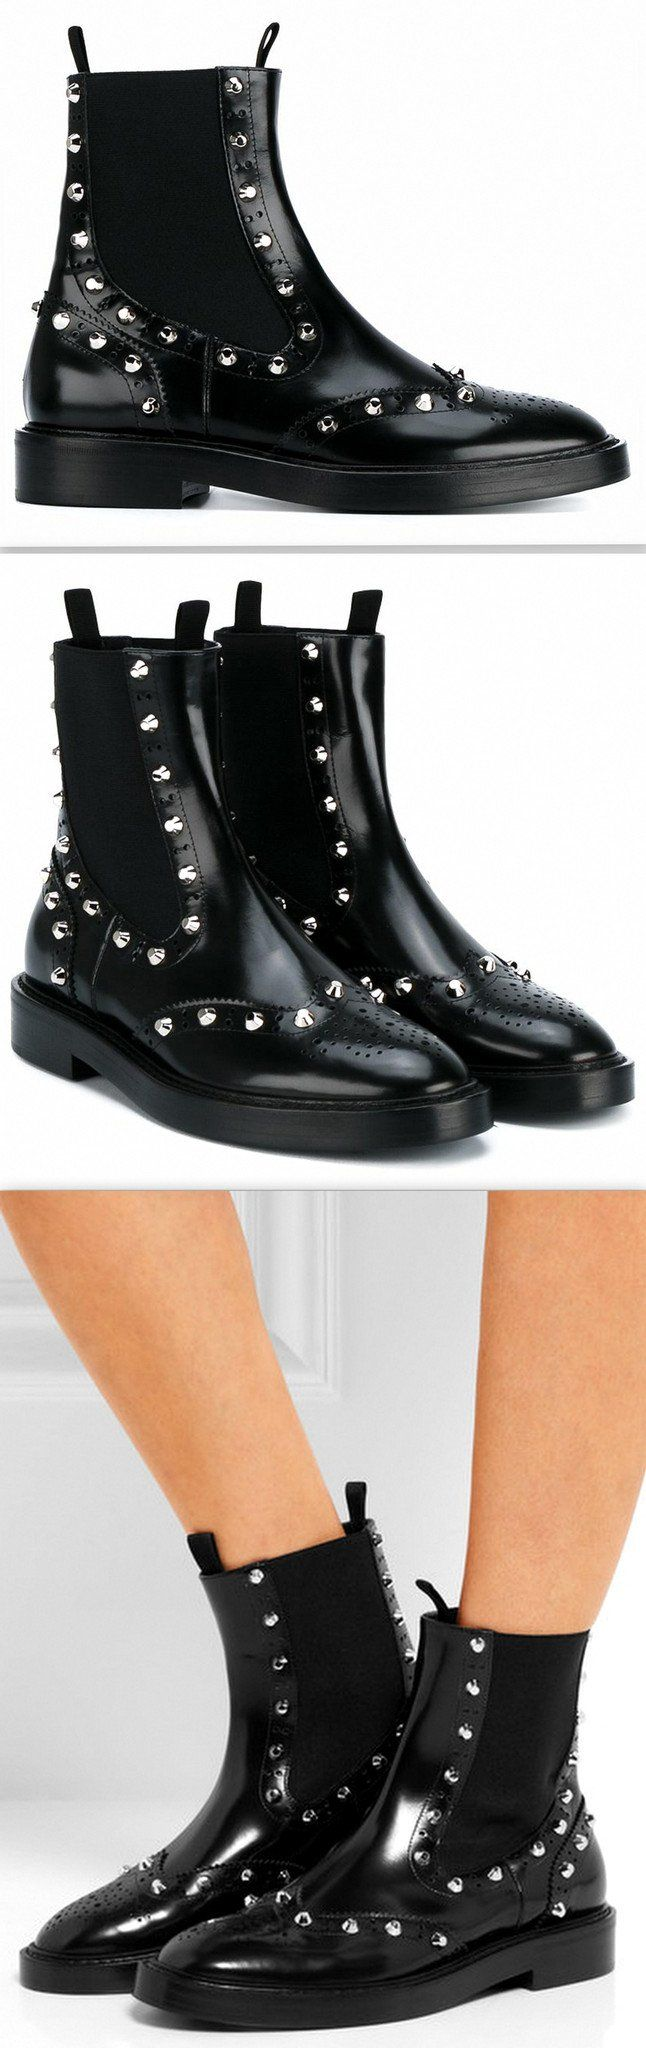 Black Studded Chelsea Brogue Boots